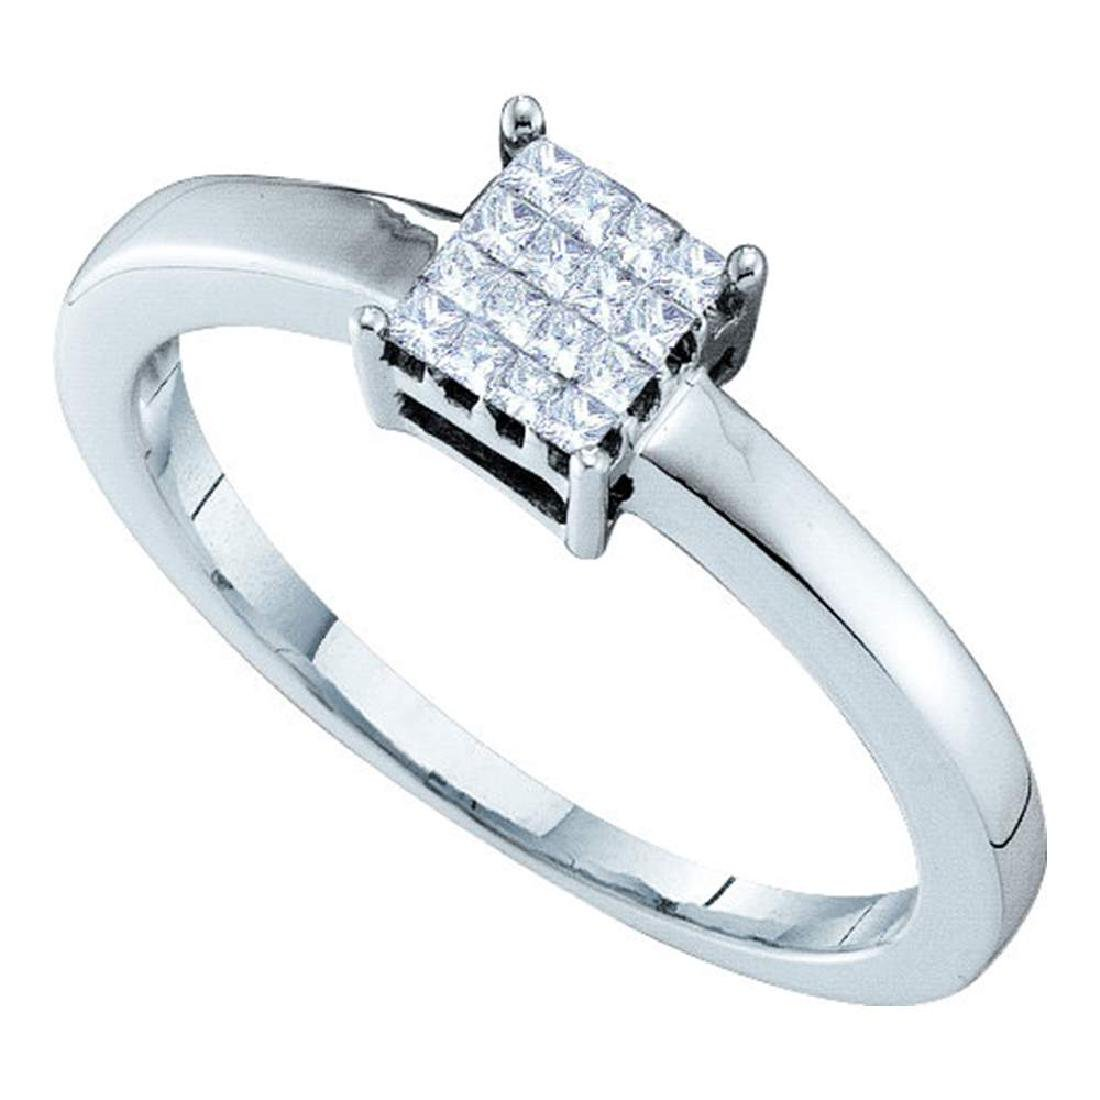 0.13 CTW Princess Diamond Square Cluster Ring 14KT